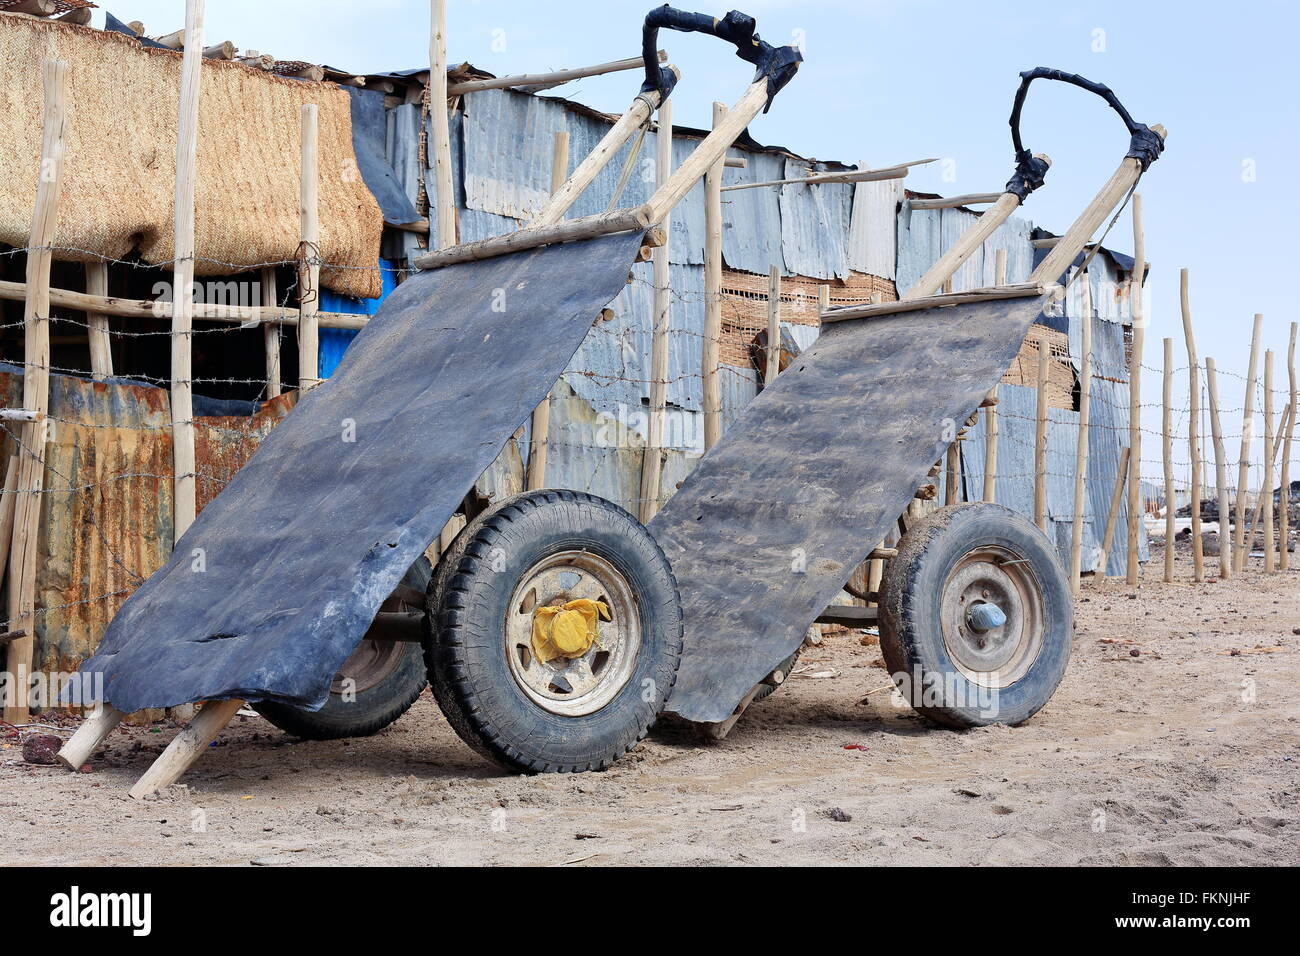 Two wheeled wooden carts-tin platforms for transportation of salt stationed beside the barbed wire fence of tin - Stock Image